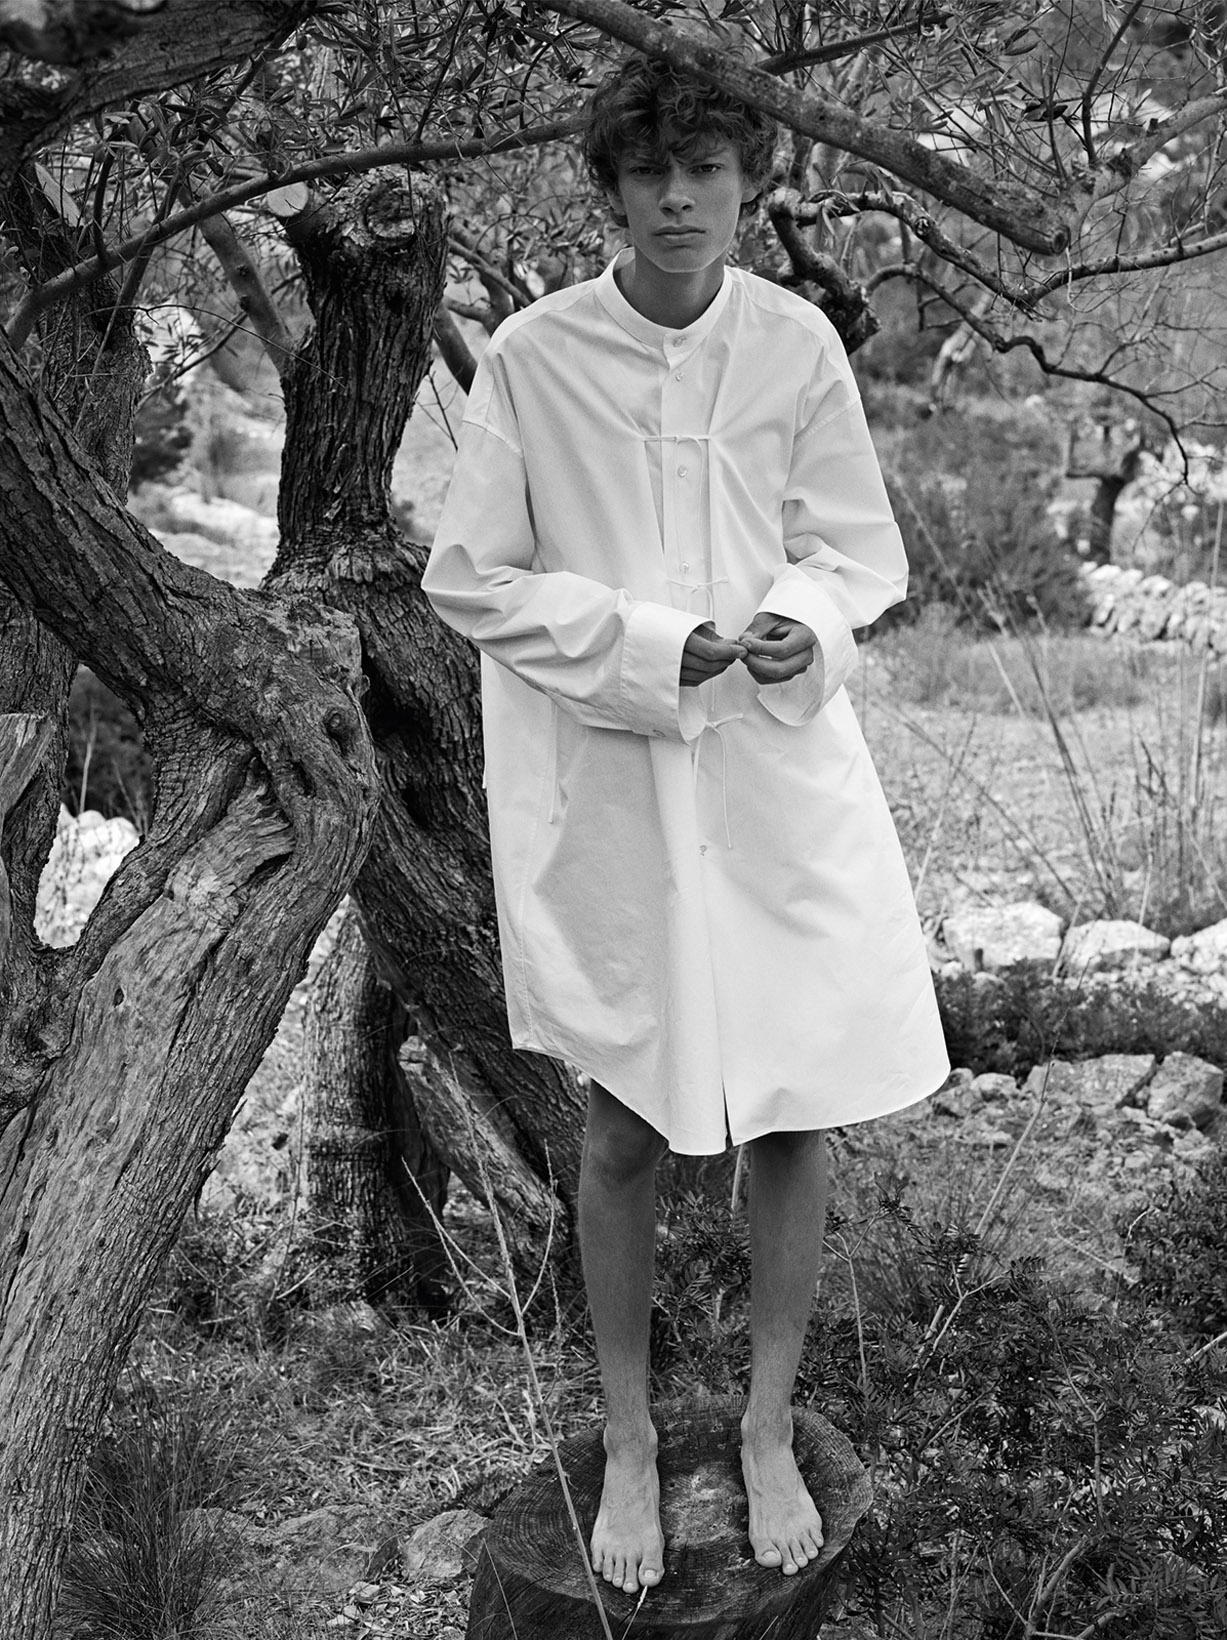 Jil Sander spring/summer 2018 / Jolie Alien and Fisher Smith by Mario Sorrenti - Document Journal FW2017